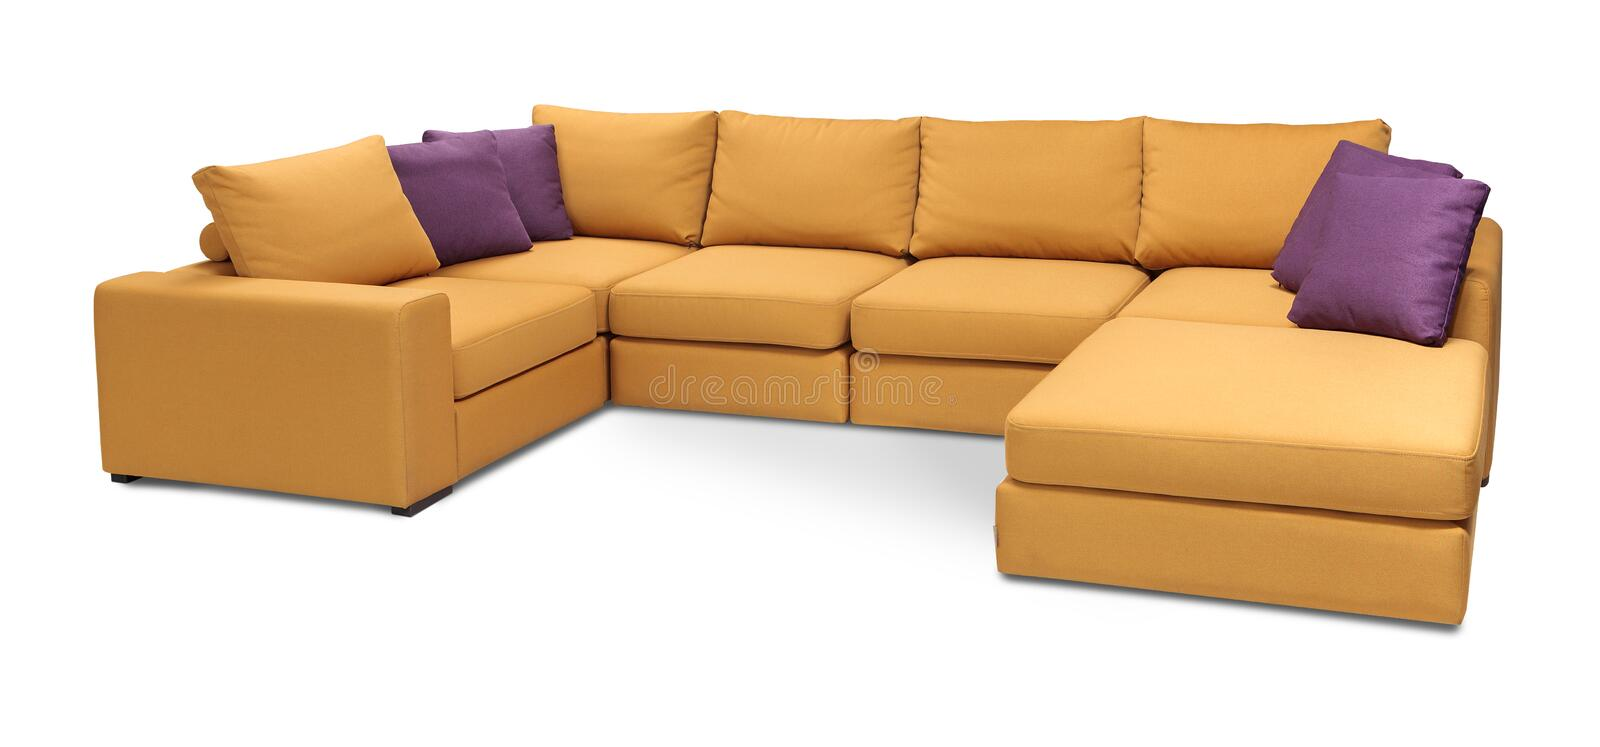 Upholstery sofa corner set with pillows isolated on white background with clipping path.  royalty free stock photography